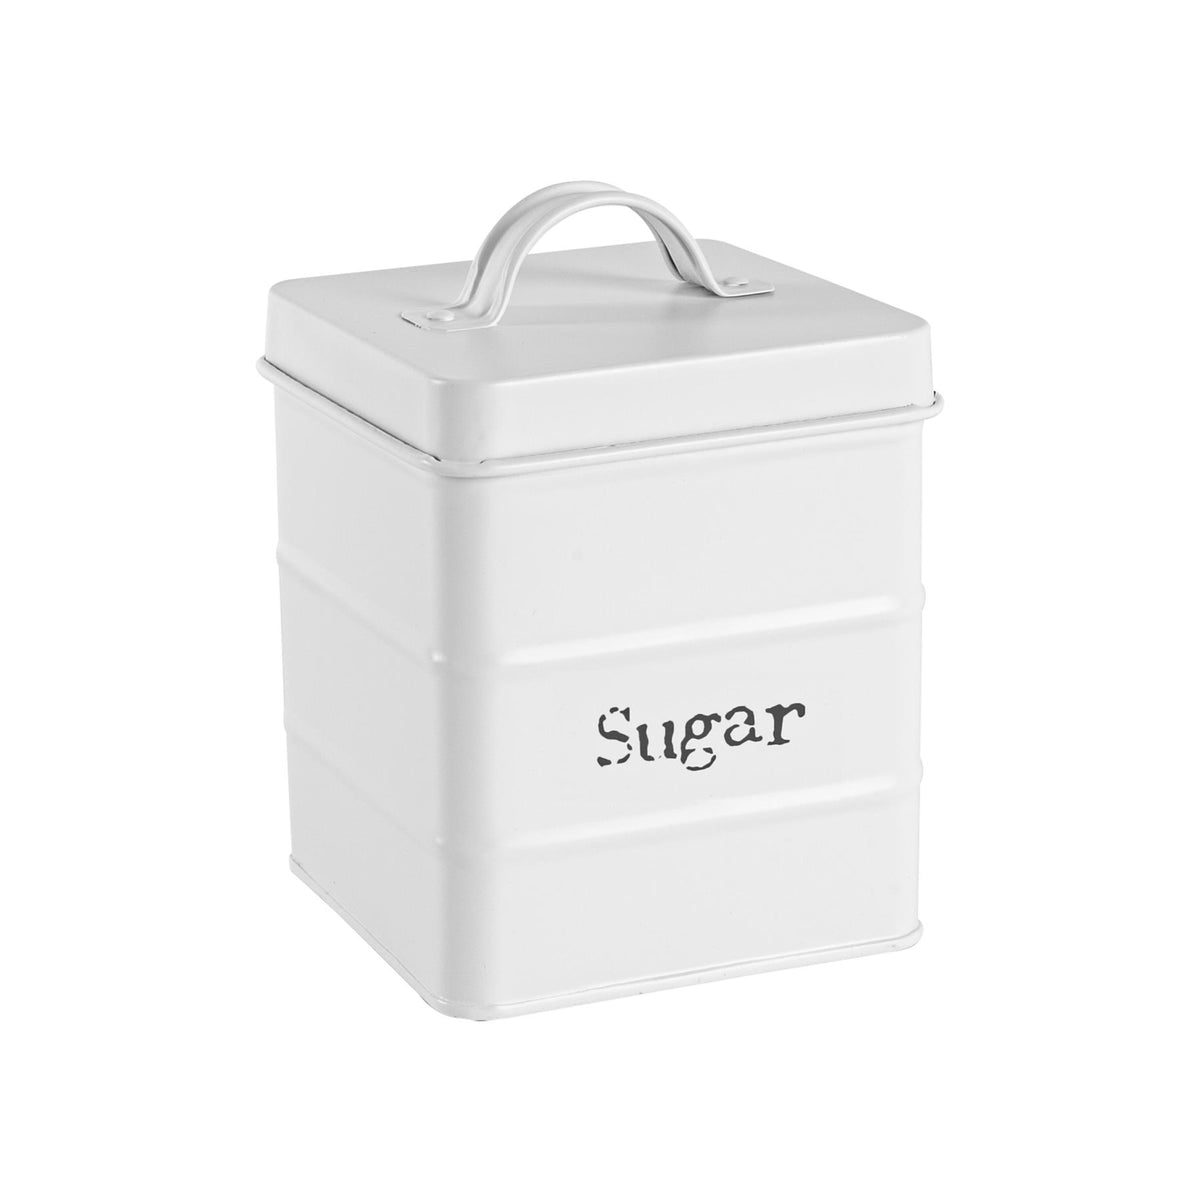 Harbour Housewares Vintage Sugar Storage Canister - Matte White